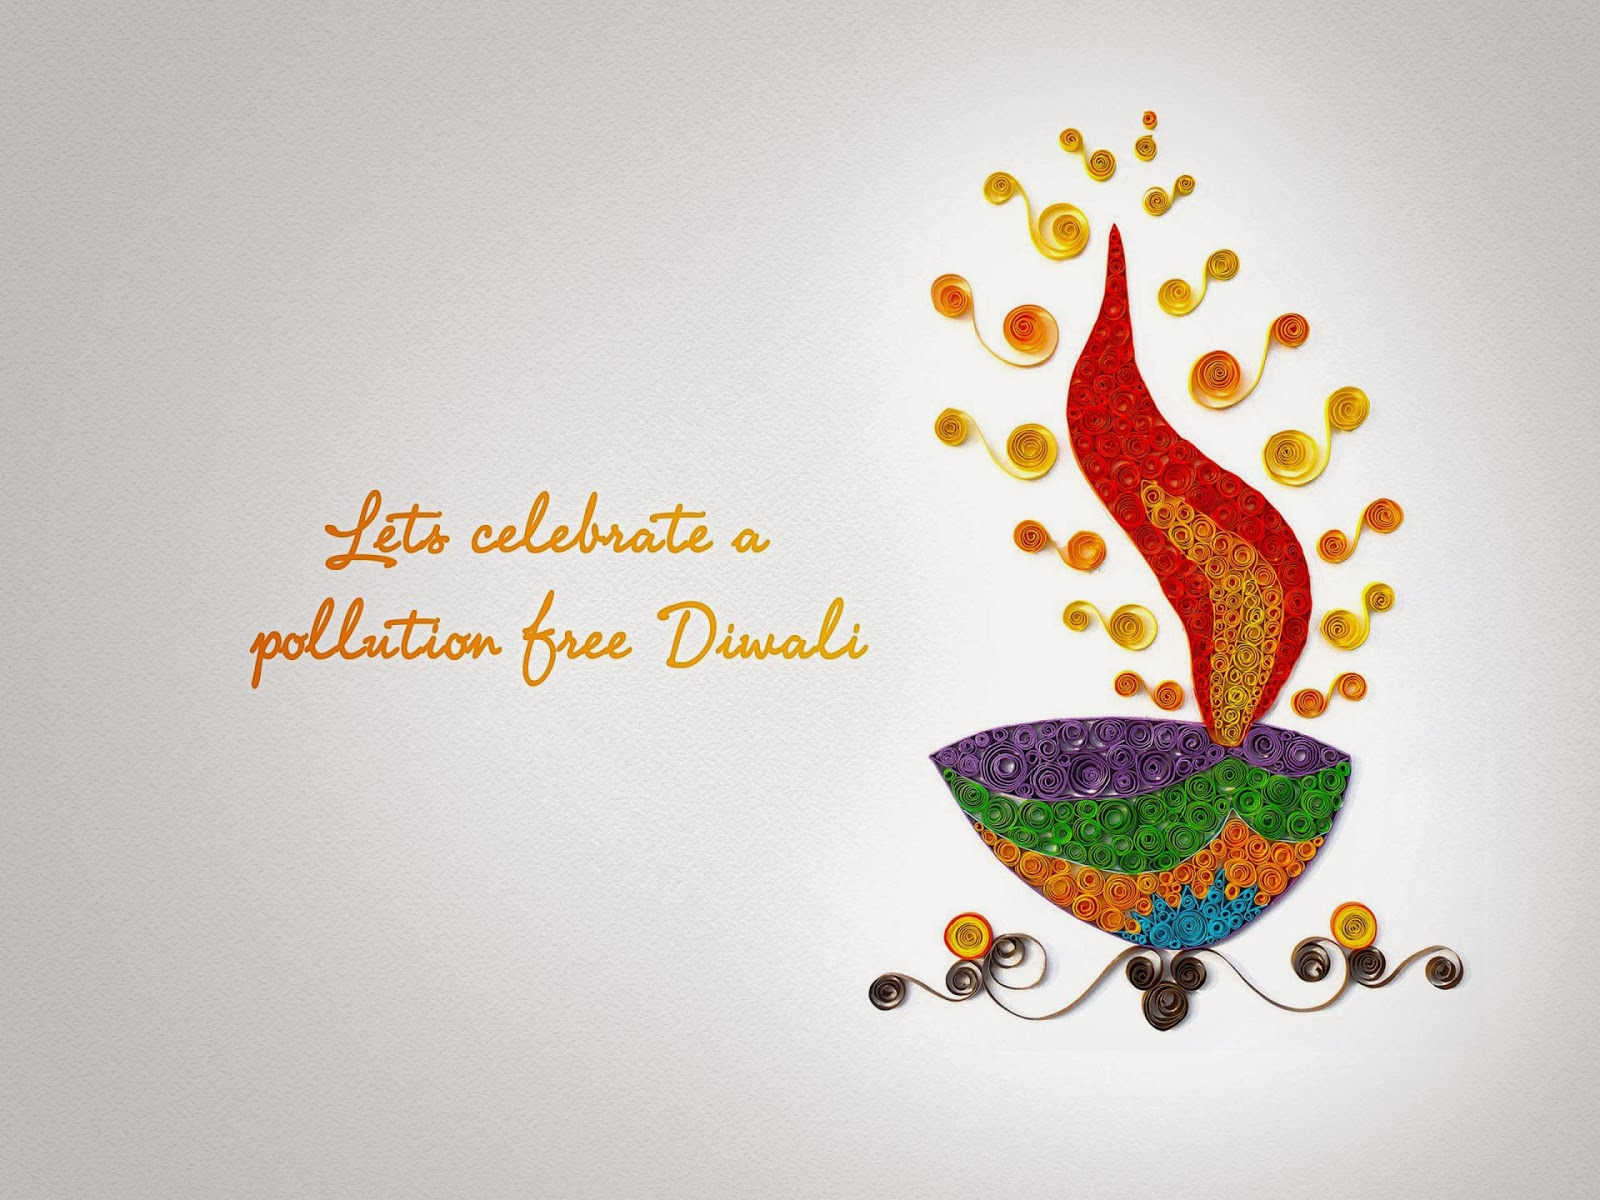 Cgfrog Beautiful Diwali Greeting Card Designs And Backgrounds For